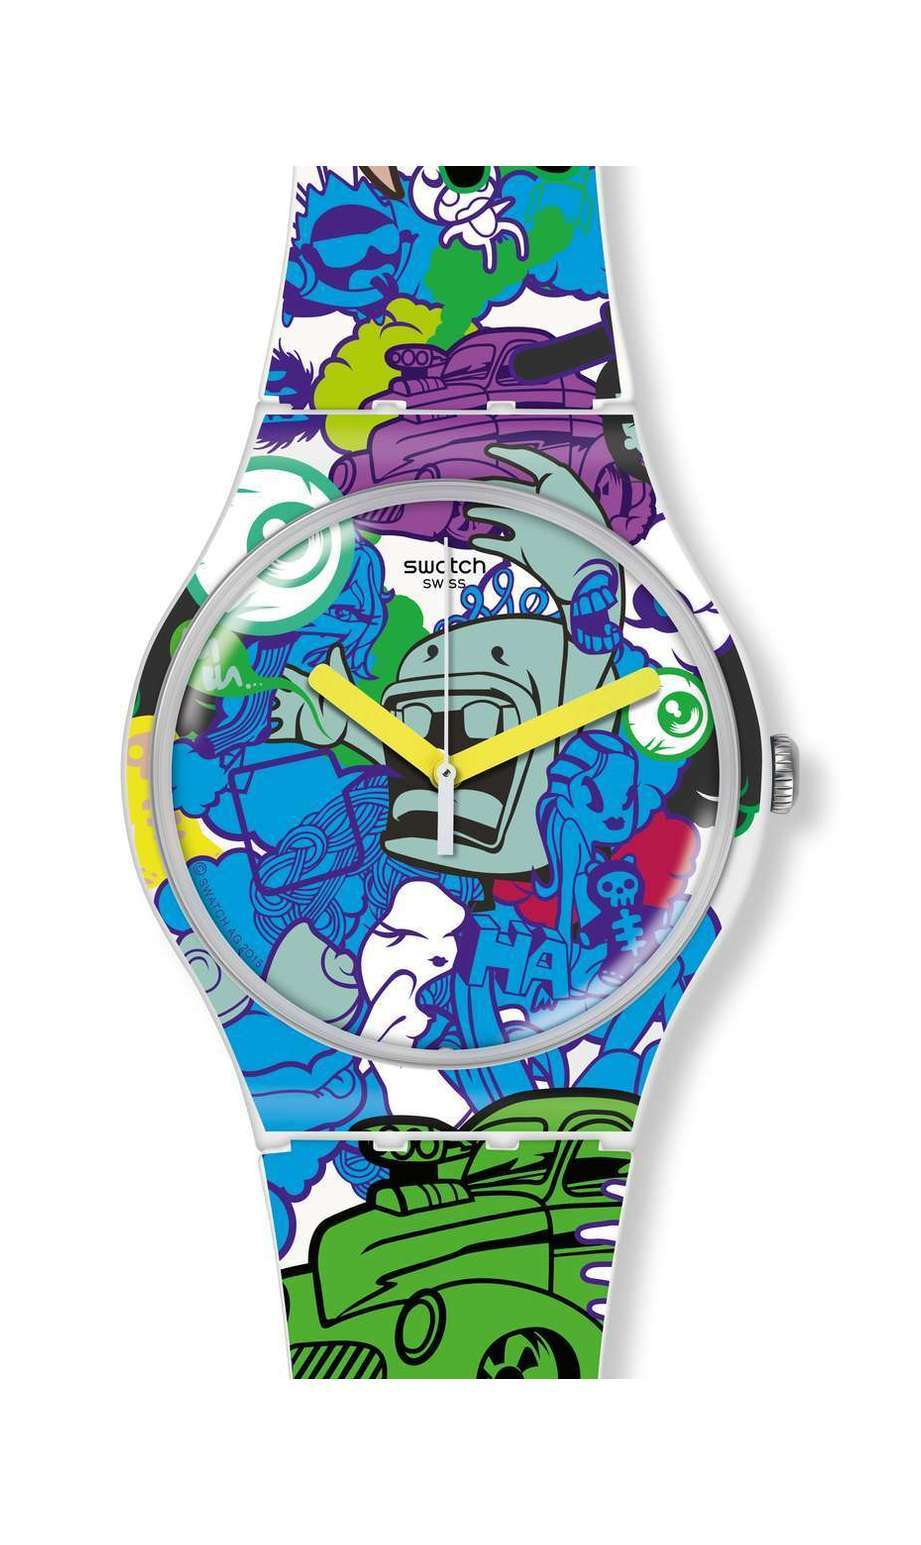 Swatch - WALL PAINT - 1